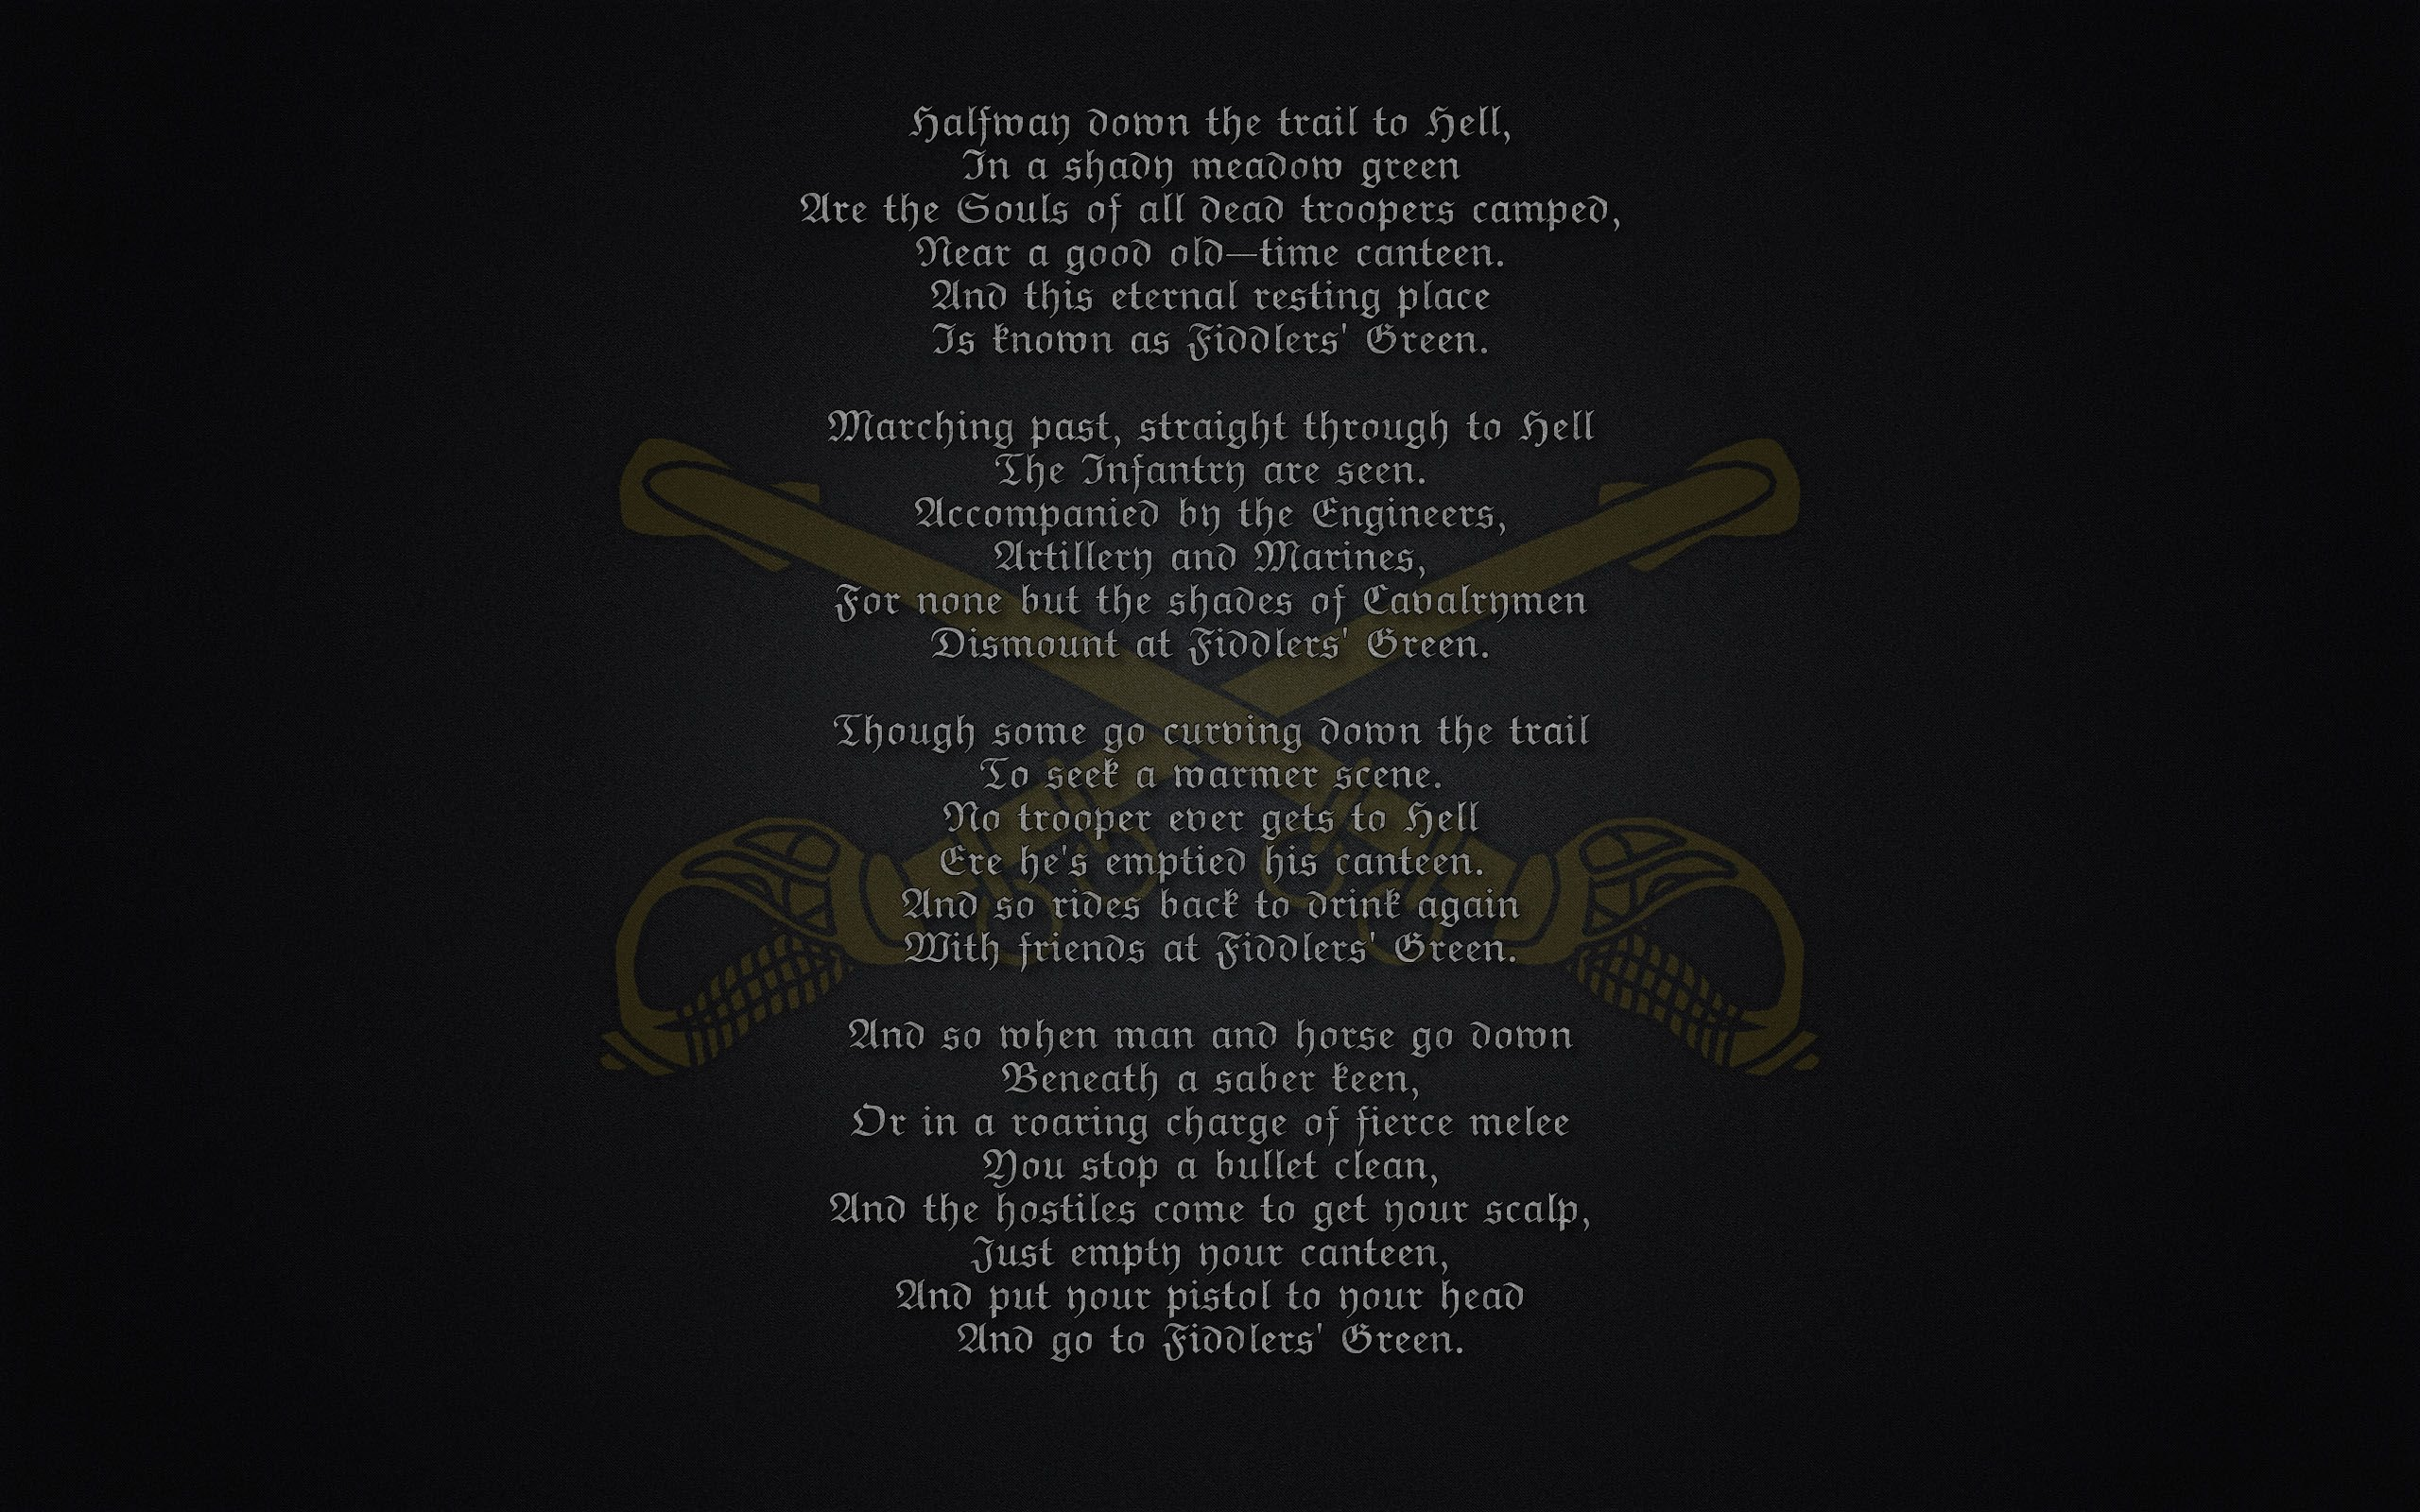 Fiddler's Green Poem military warriors soldier marines